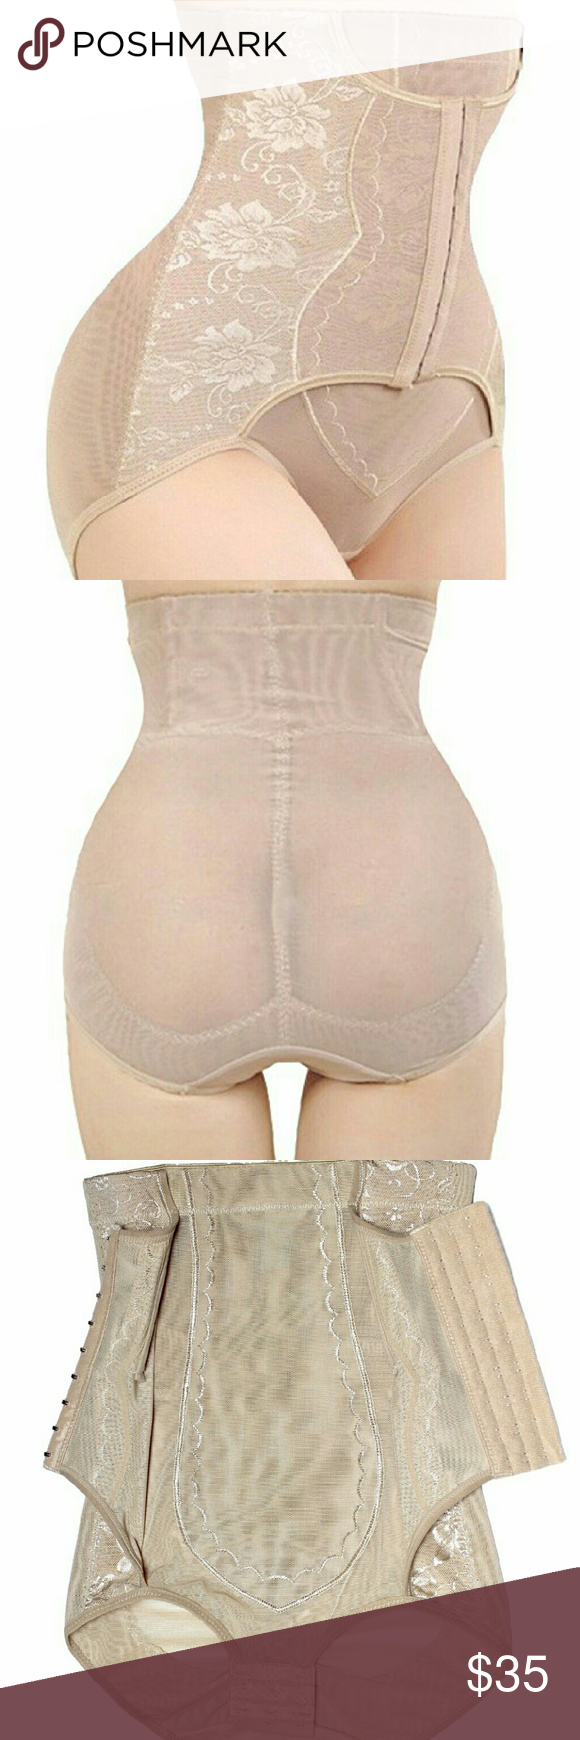 007d60084c218 Brand new with tag SHAPERQUEEN 1020 Women Best Waist Cincher Girdle Belly  Trainer Corset Body Shapewear Accessories